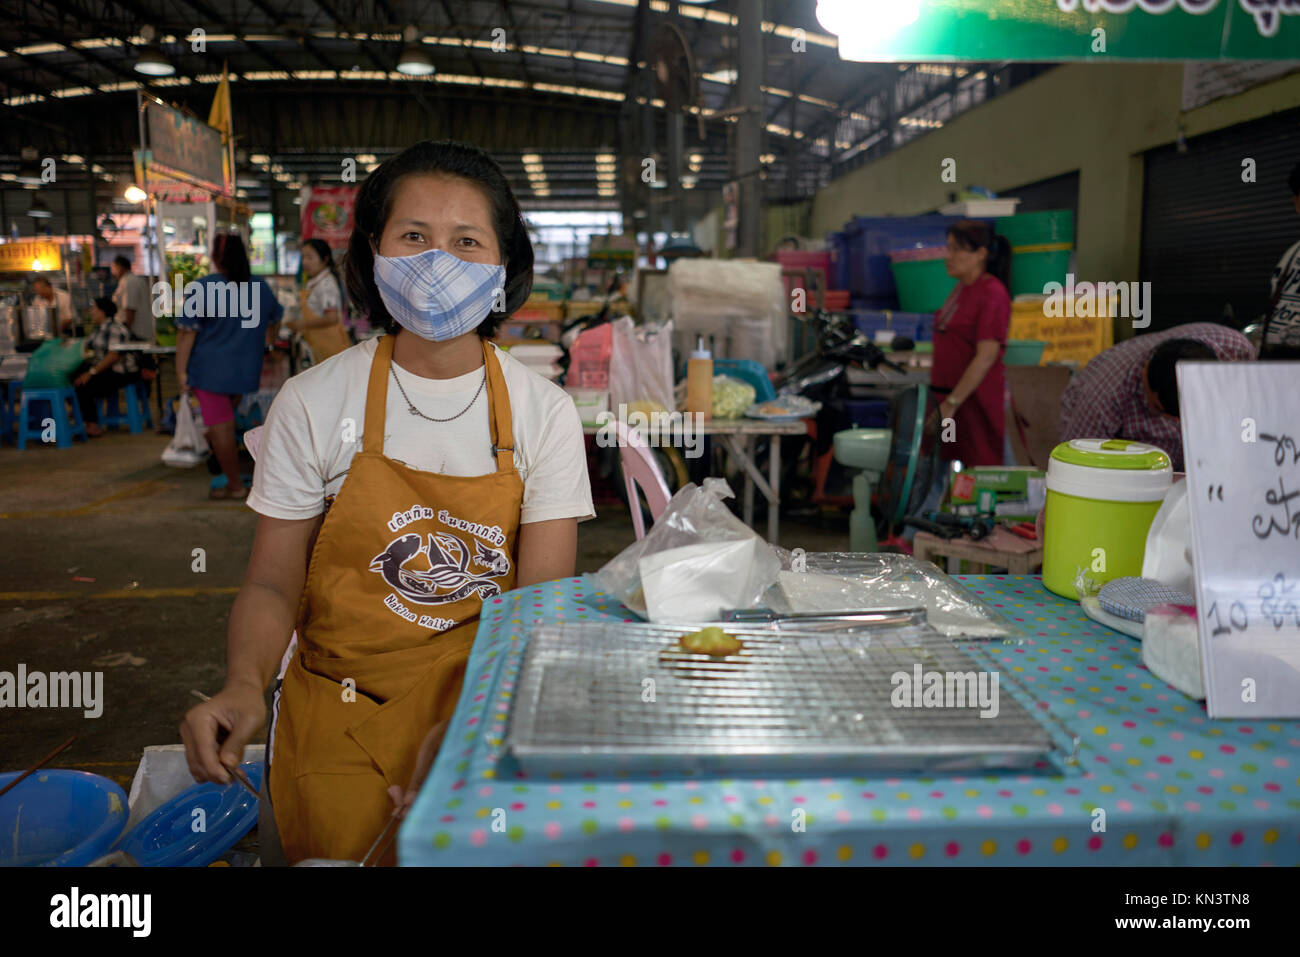 Woman facemask, anti-pollution mask, Thailand street scene - Stock Image